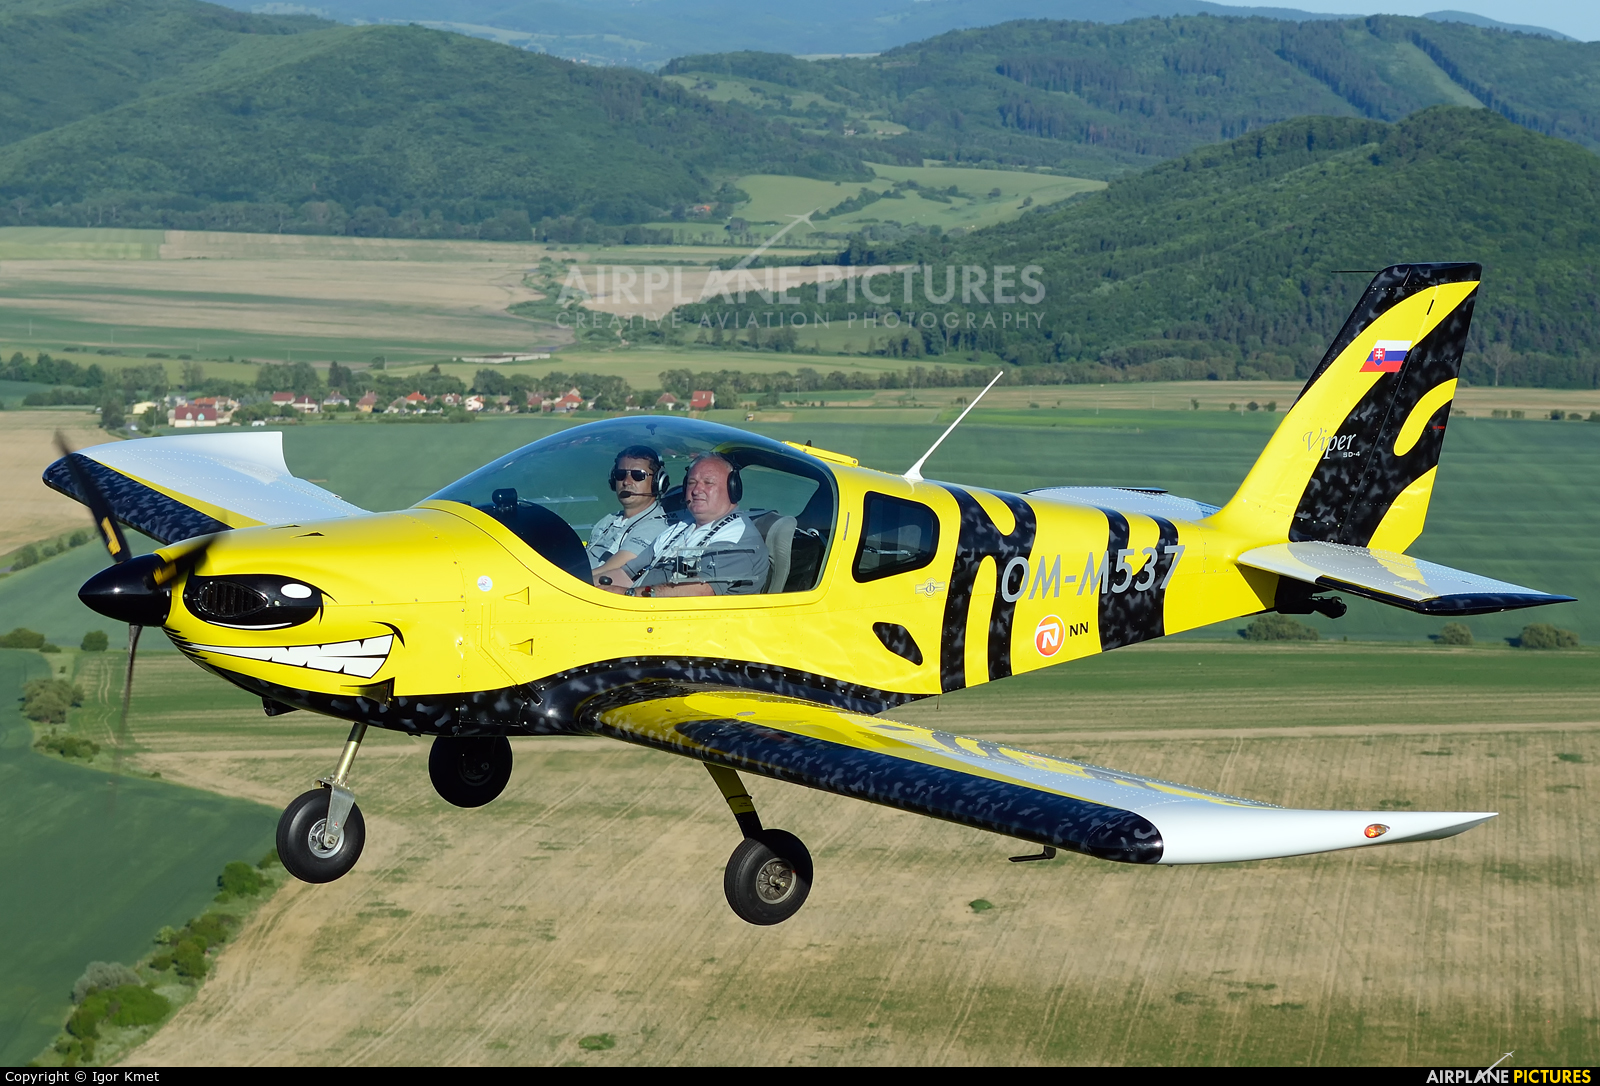 Private OM-M537 aircraft at In Flight - Slovakia